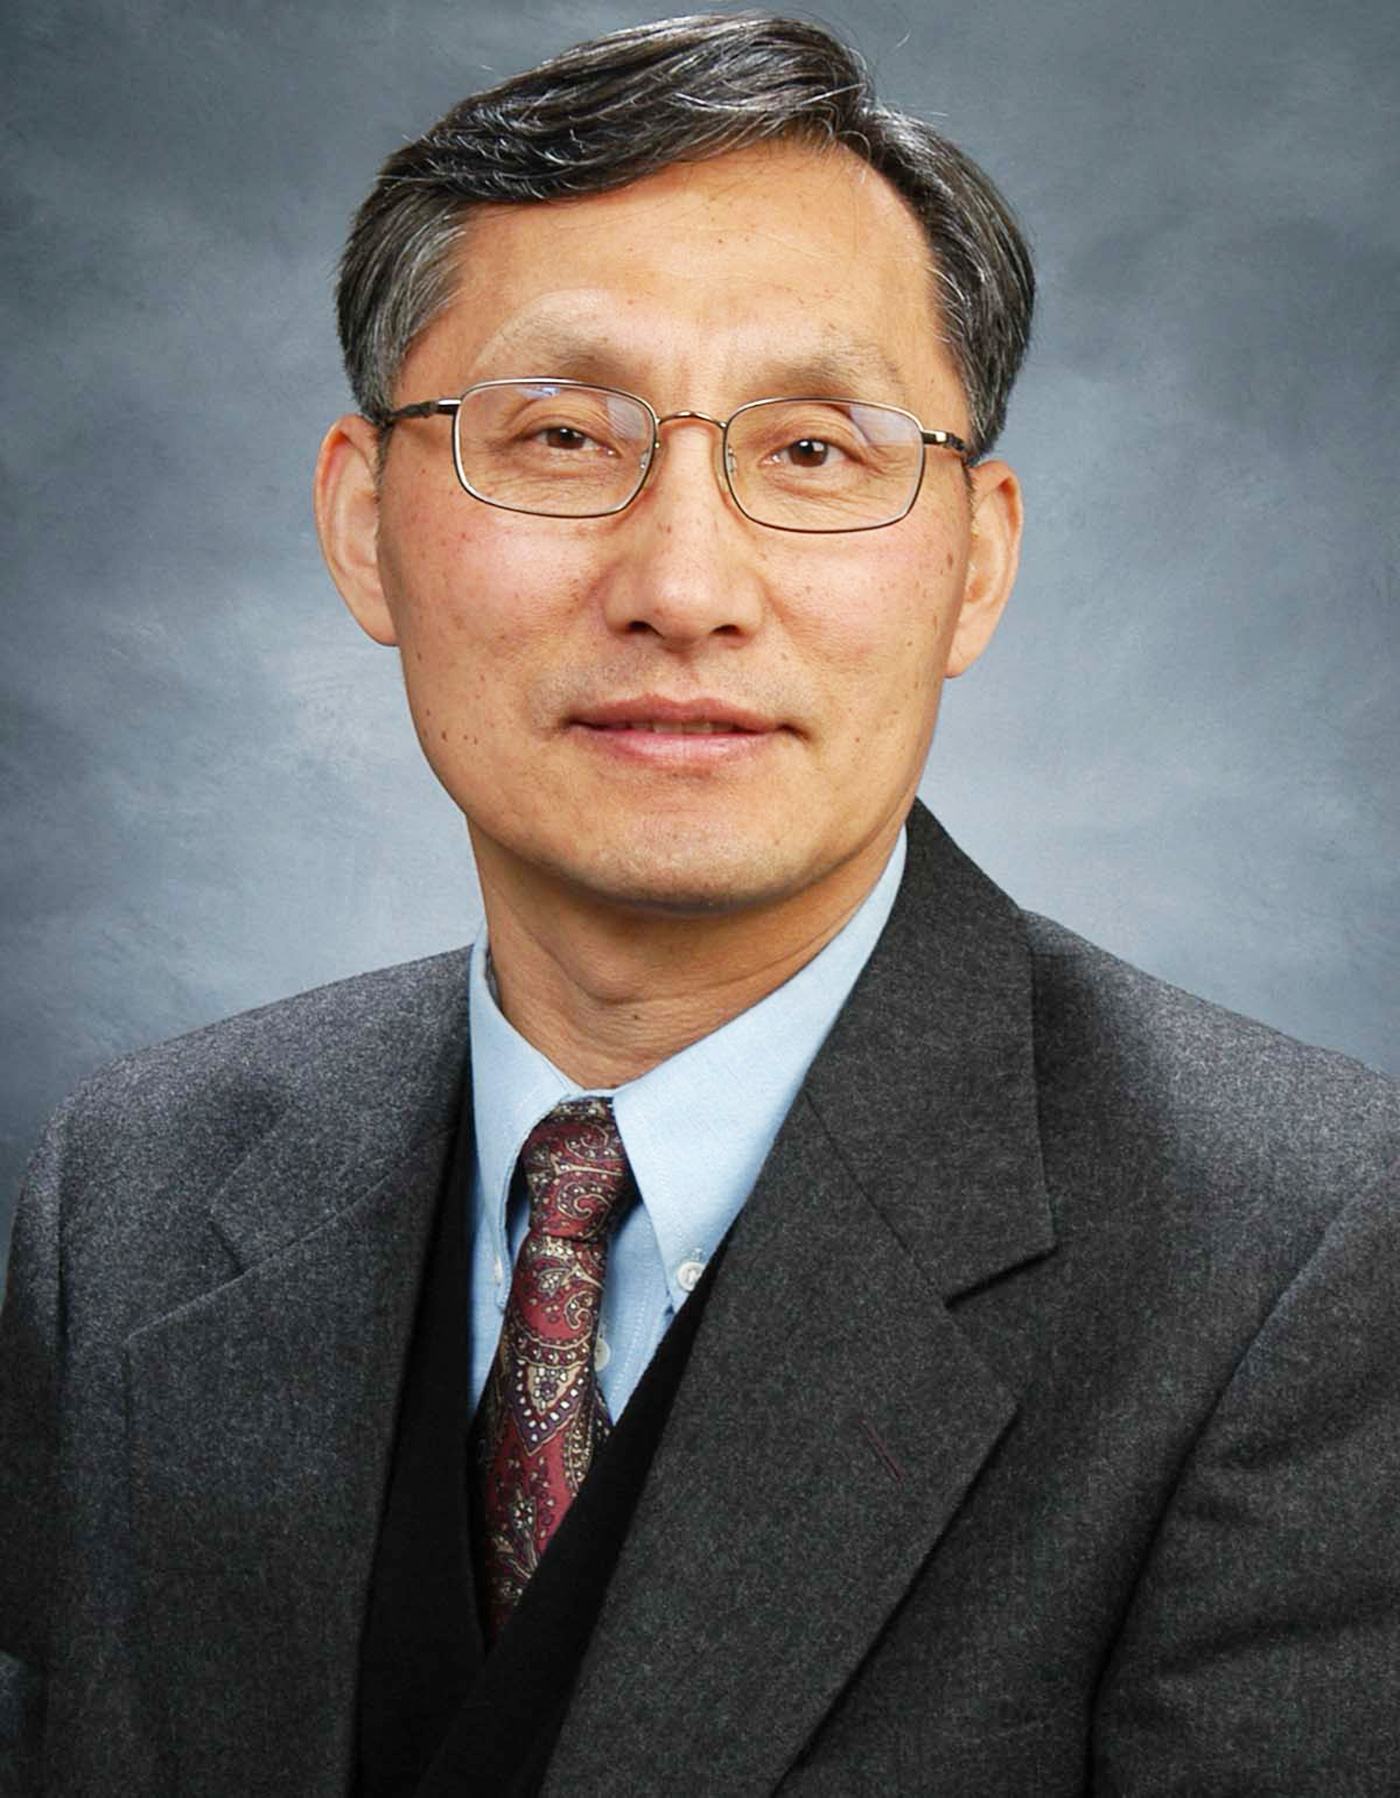 Eunsang Yoon is a MEI Professor in the Manning School of Business in the Marketing Entrepreneurship and Innovation Dept. at UMass Lowell